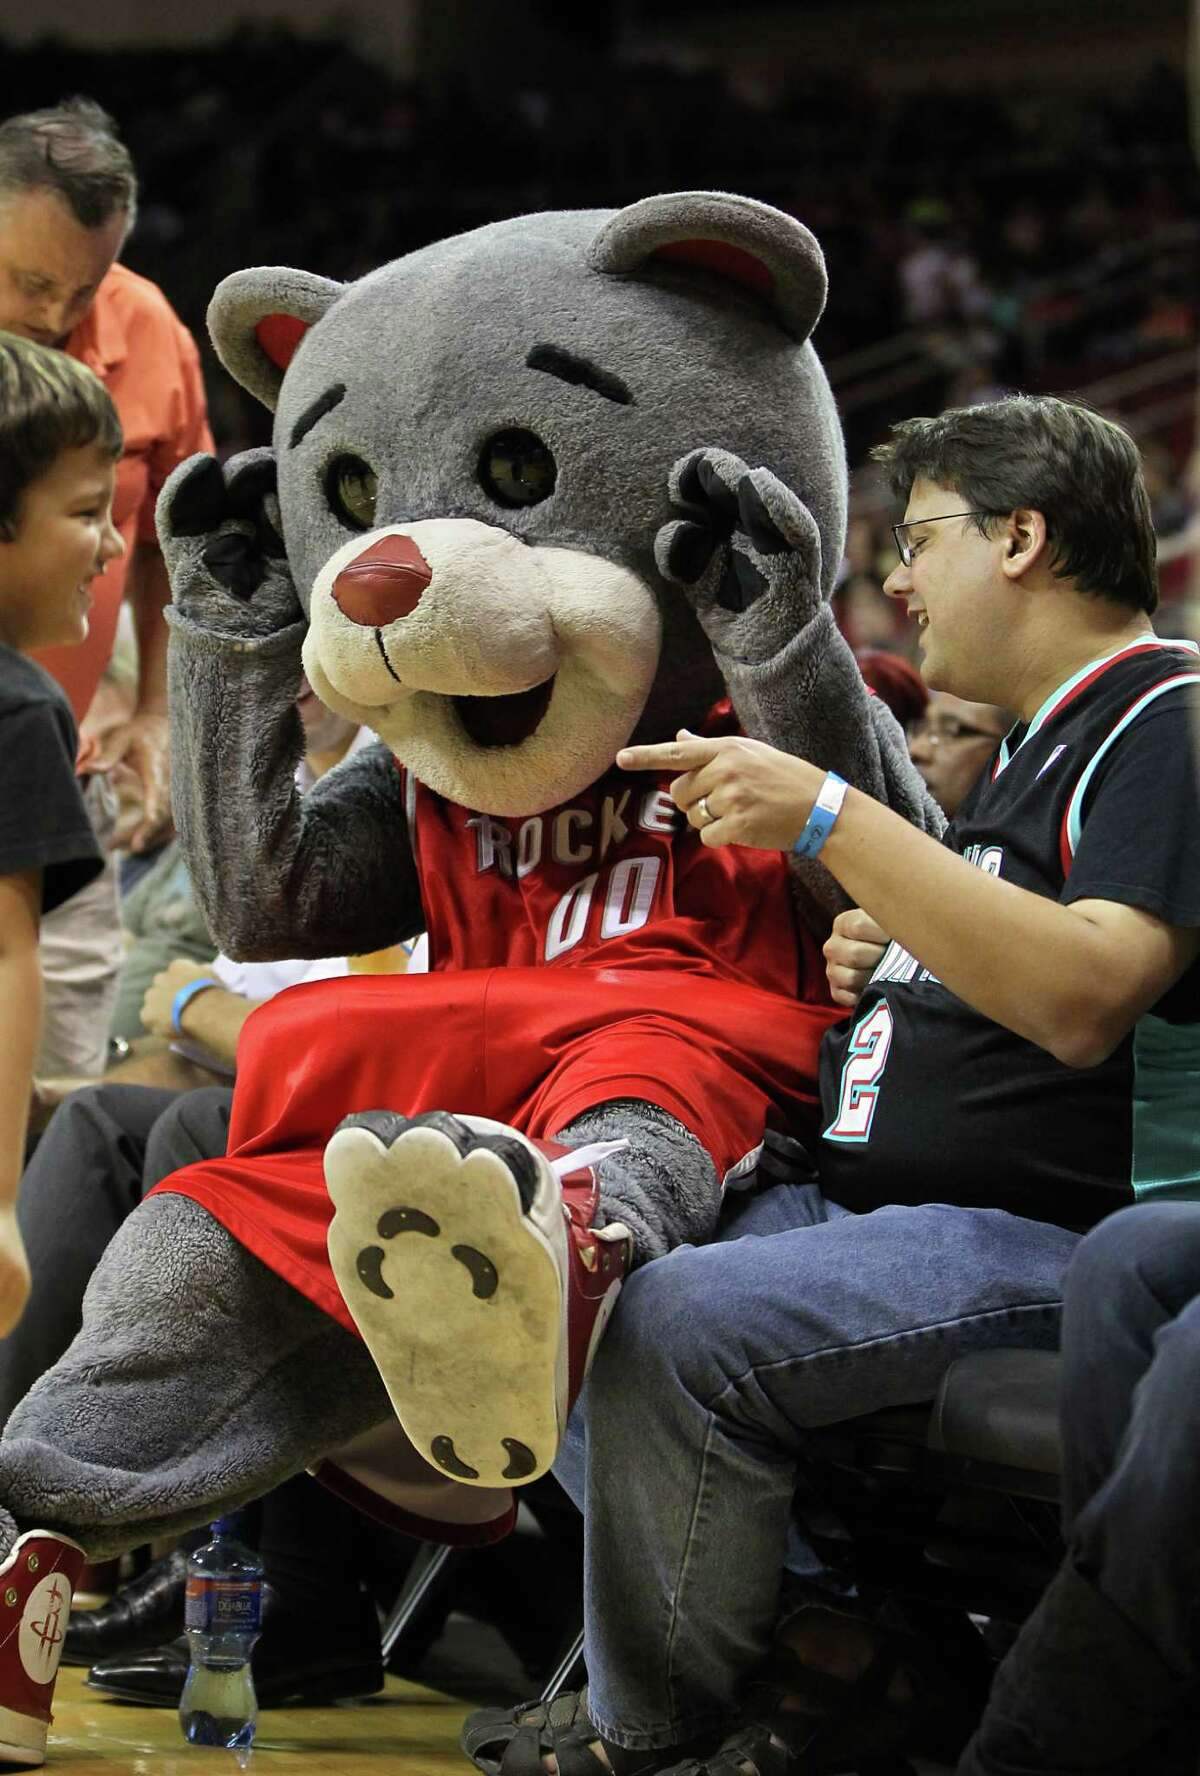 Clutch the Bear jokes around with fans at a Rockets game.